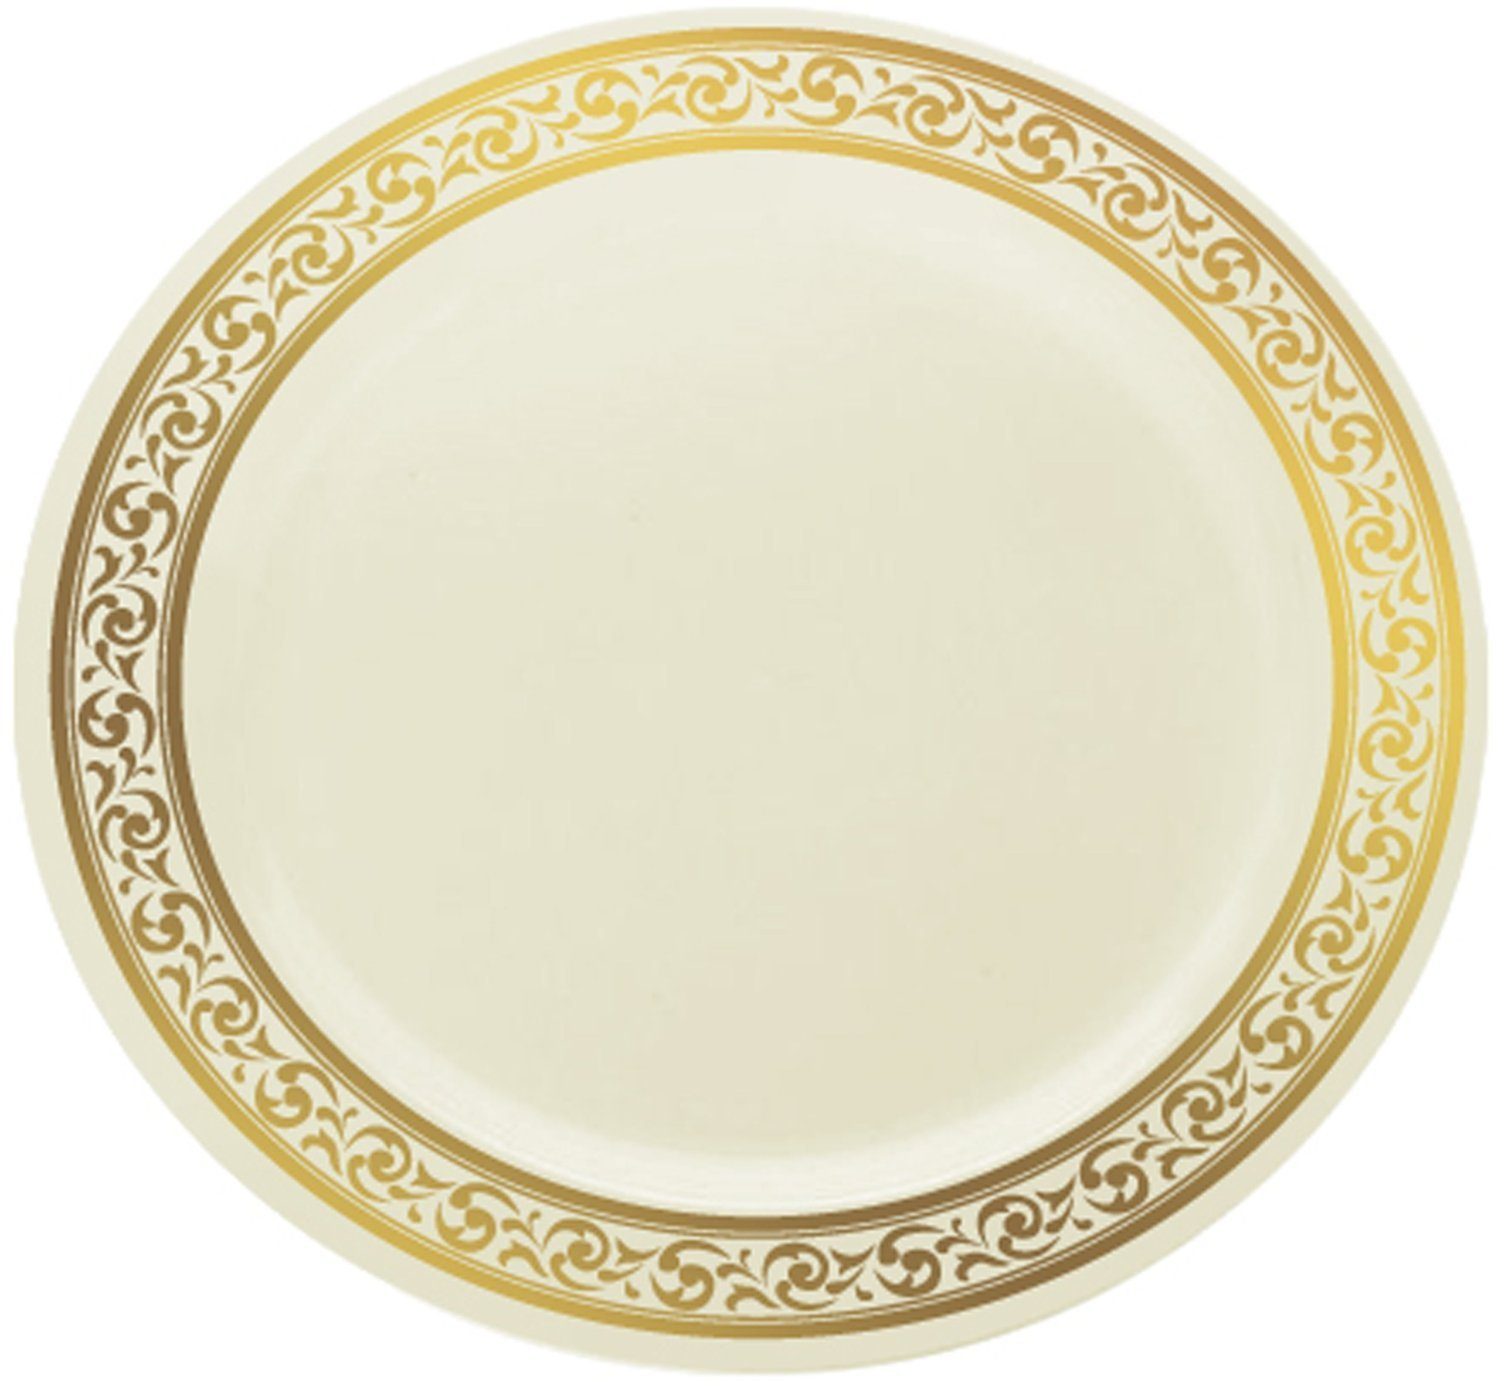 Amazon.com | Decor Cream with Gold Rim 10.25  Heavyweight Plastic Dinner Plates 10 Count Dinner Plates  sc 1 st  Amazon.com & Amazon.com | Decor Cream with Gold Rim 10.25